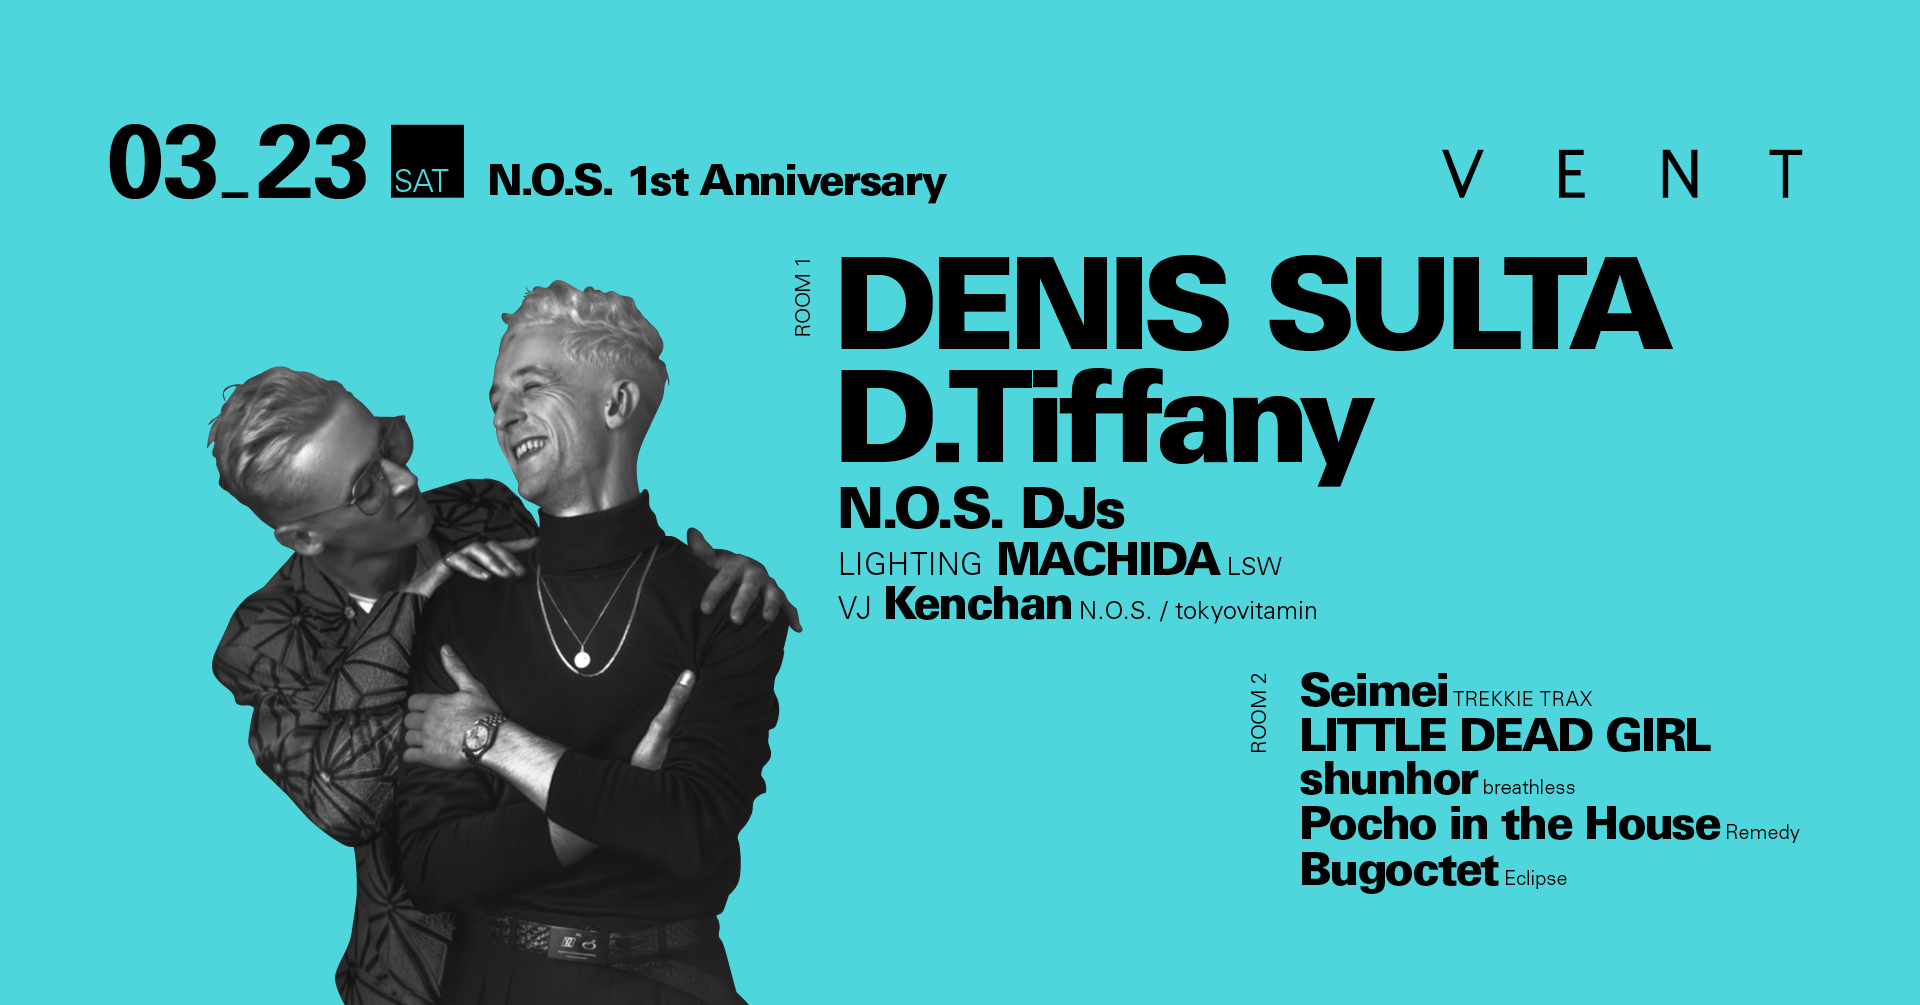 Denis Sulta at N.O.S. 1st Anniversary